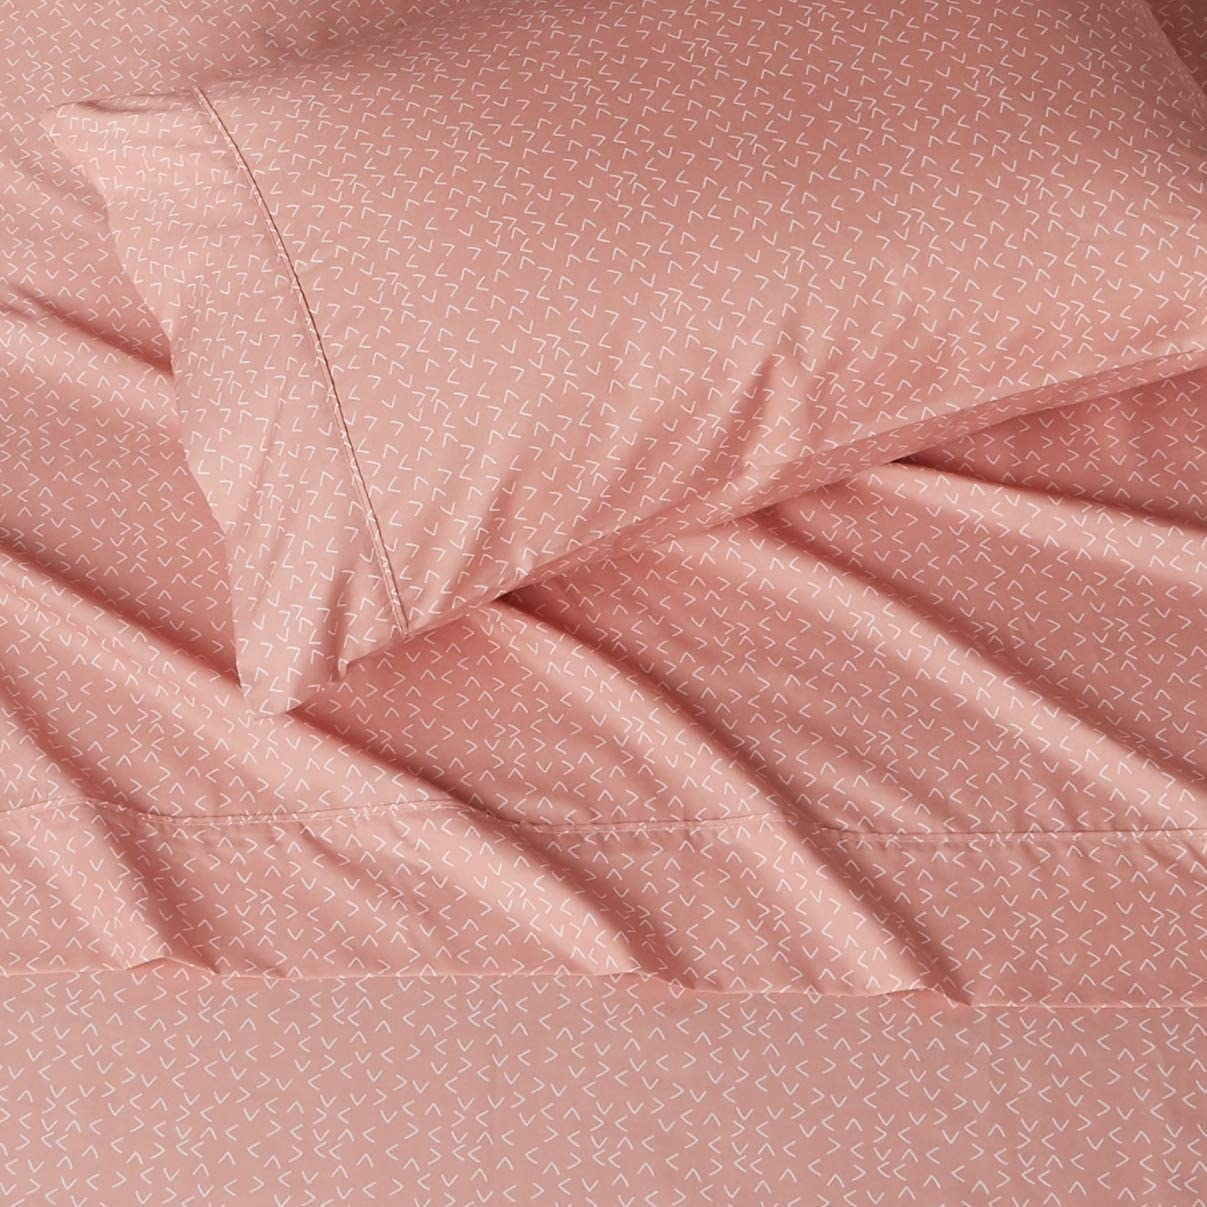 The flat sheet and pillowcase on a bed